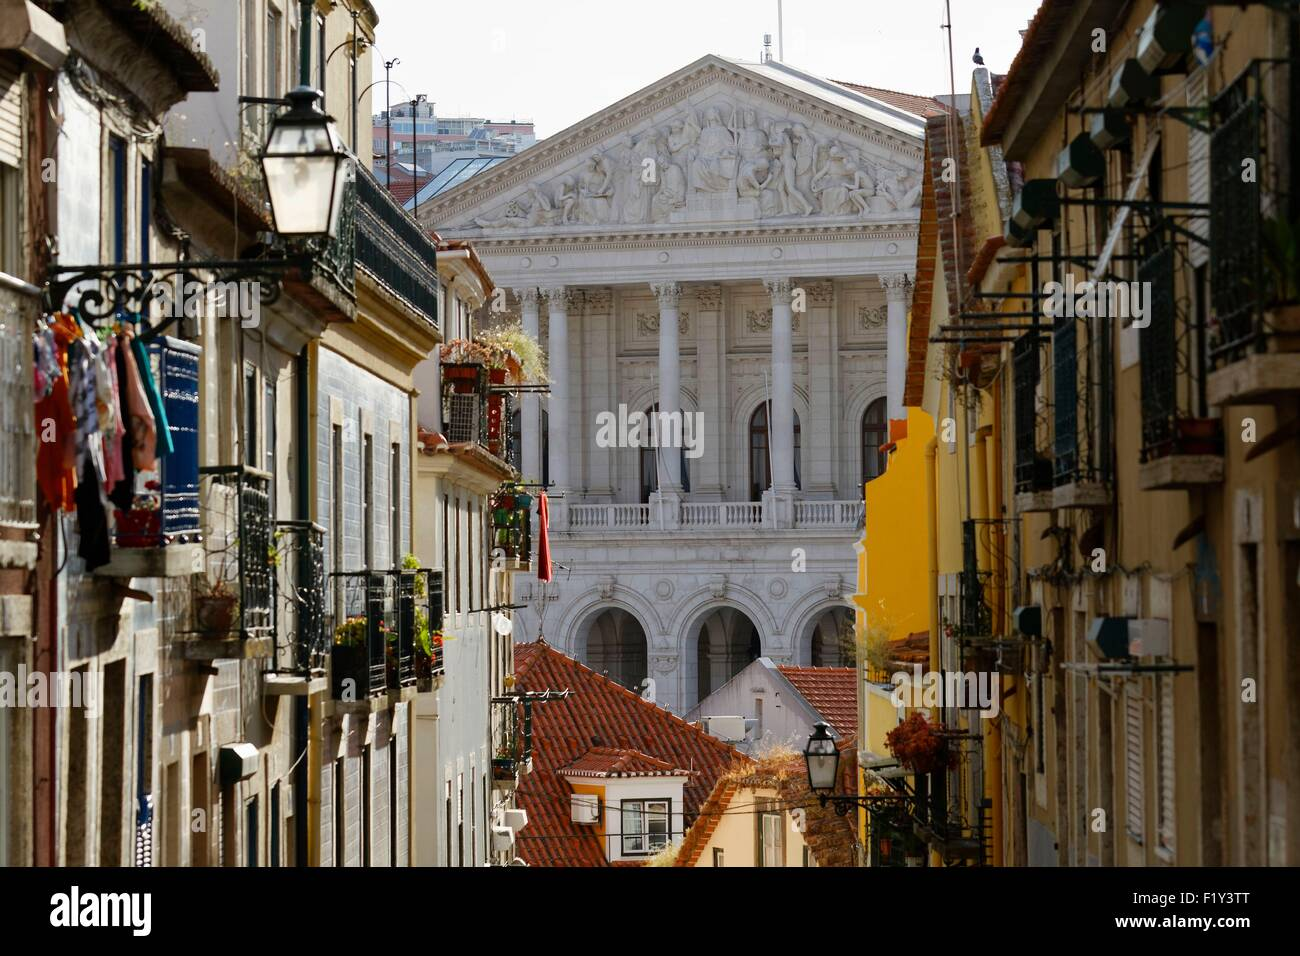 Portugal, Lisbon, Bairro Alto, the National Assembly (Palacio de Sao Bento) view from the da Academia das Ciencias - Stock Image